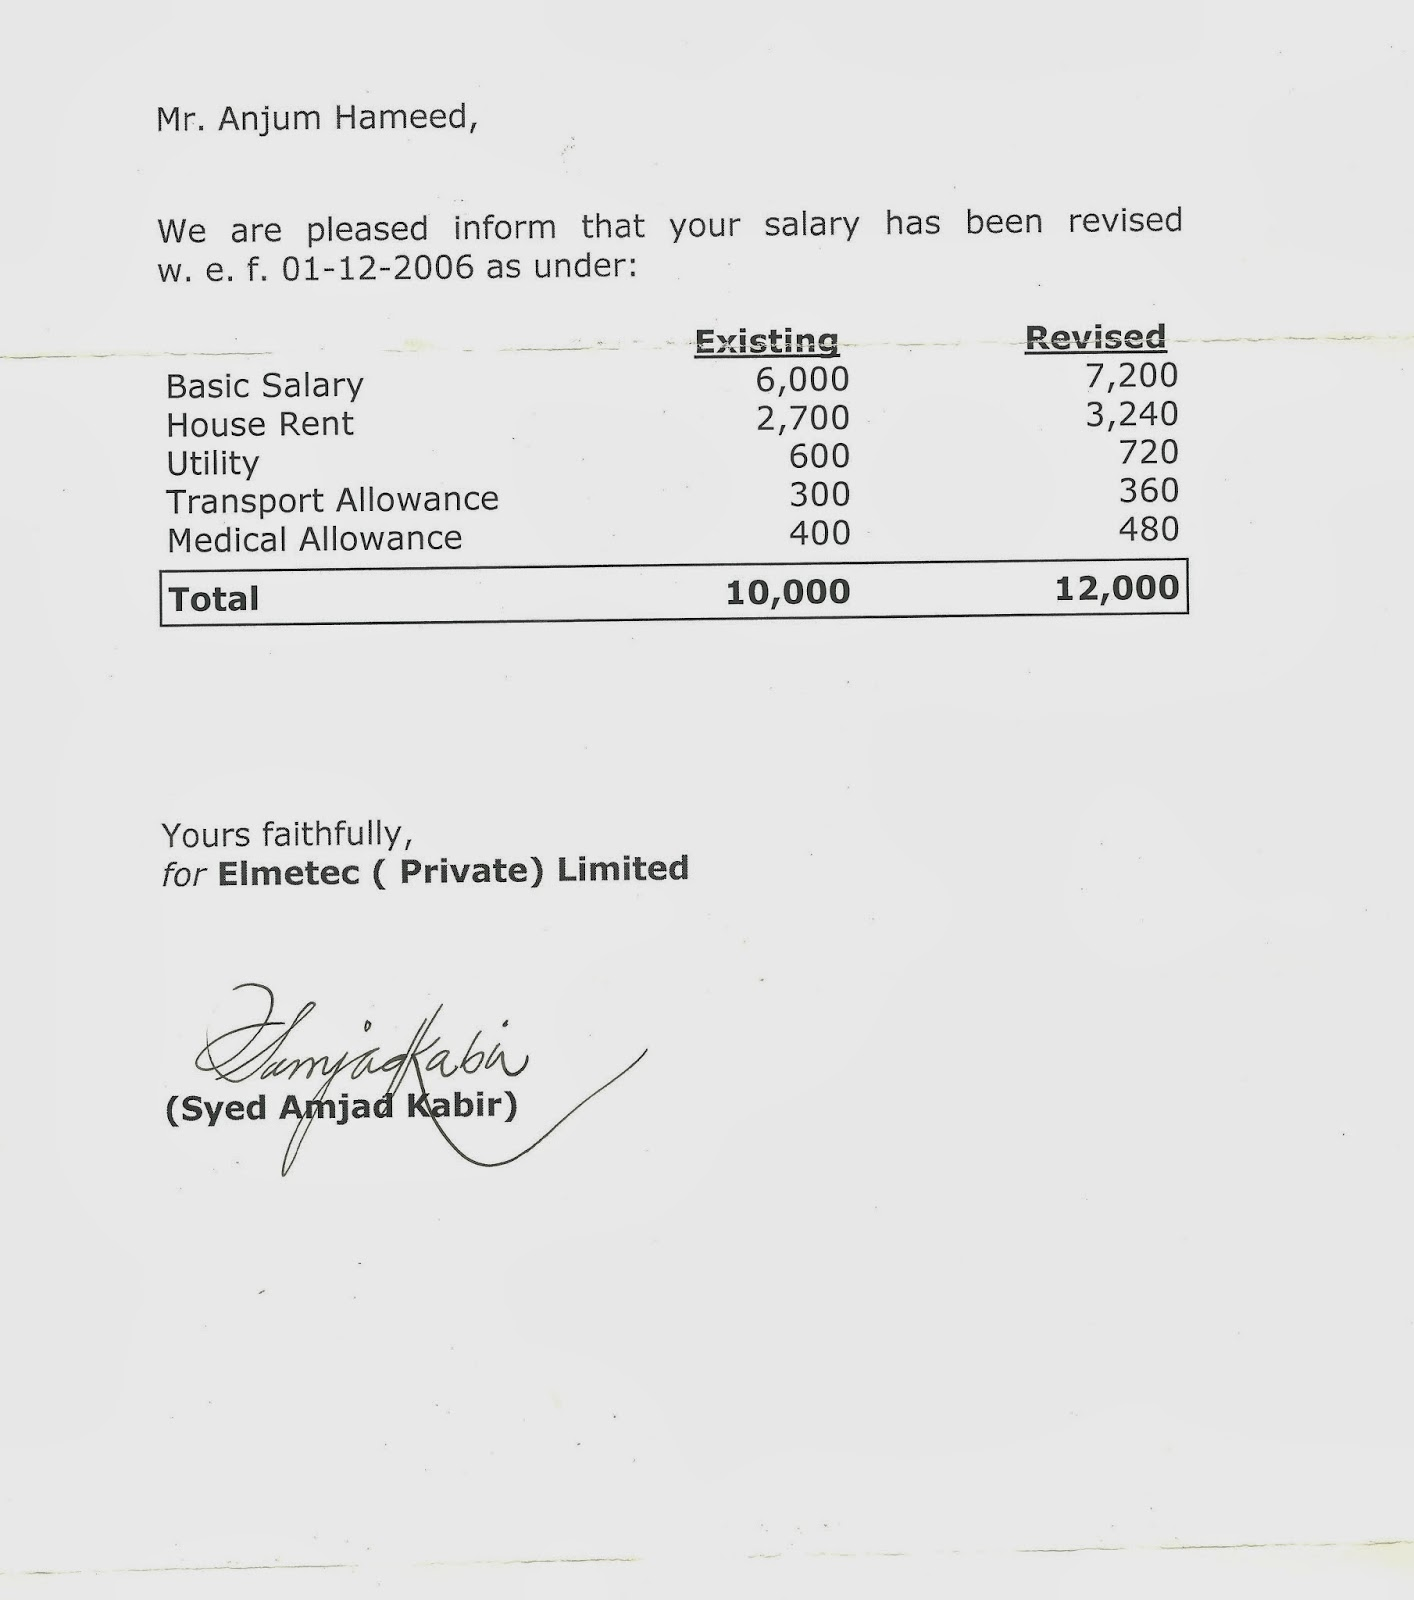 Salary Slip Sample Images – Download Salary Slip Format